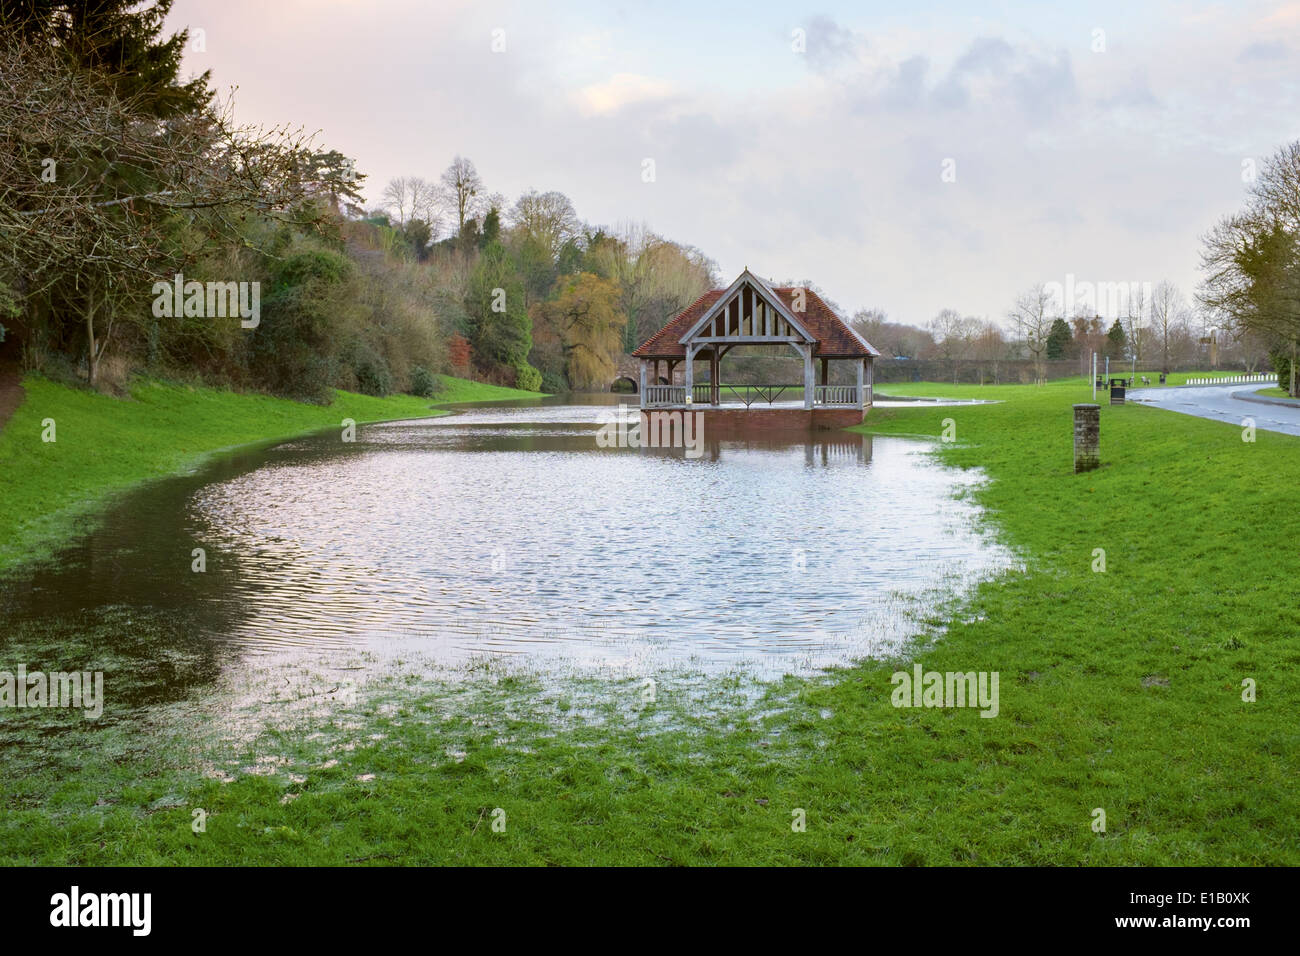 The Bandstand or Outdoor Pursuits building in Ross-On-Wye, Herefordshire. Stock Photo